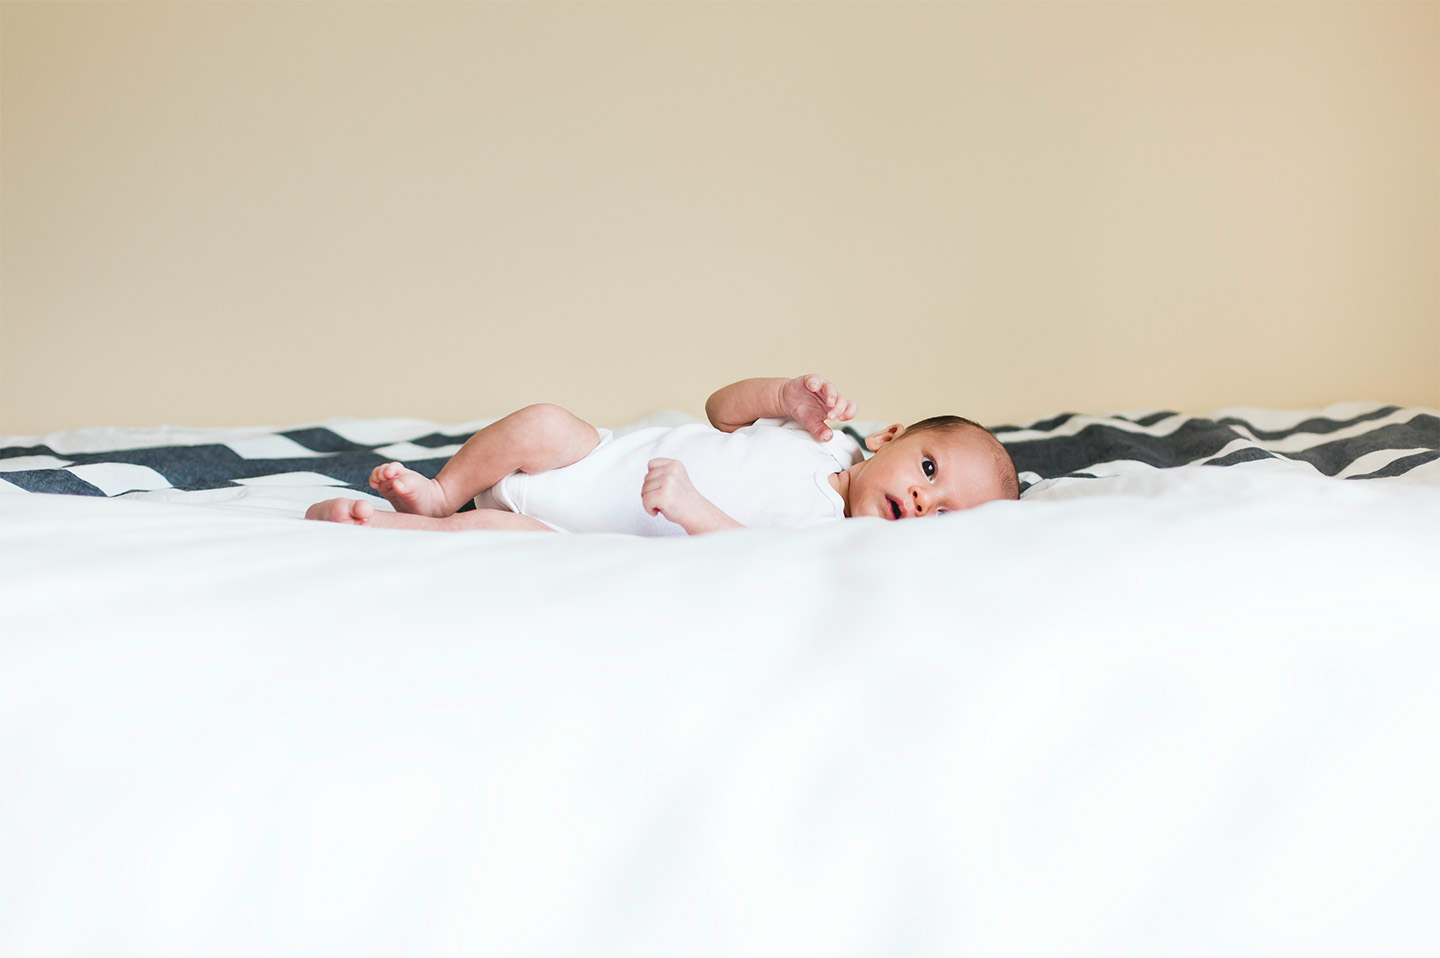 Moments-by-Lauren-Newborn-Photographer-Lifestyle-Tips-Photo-Image-002.jpg